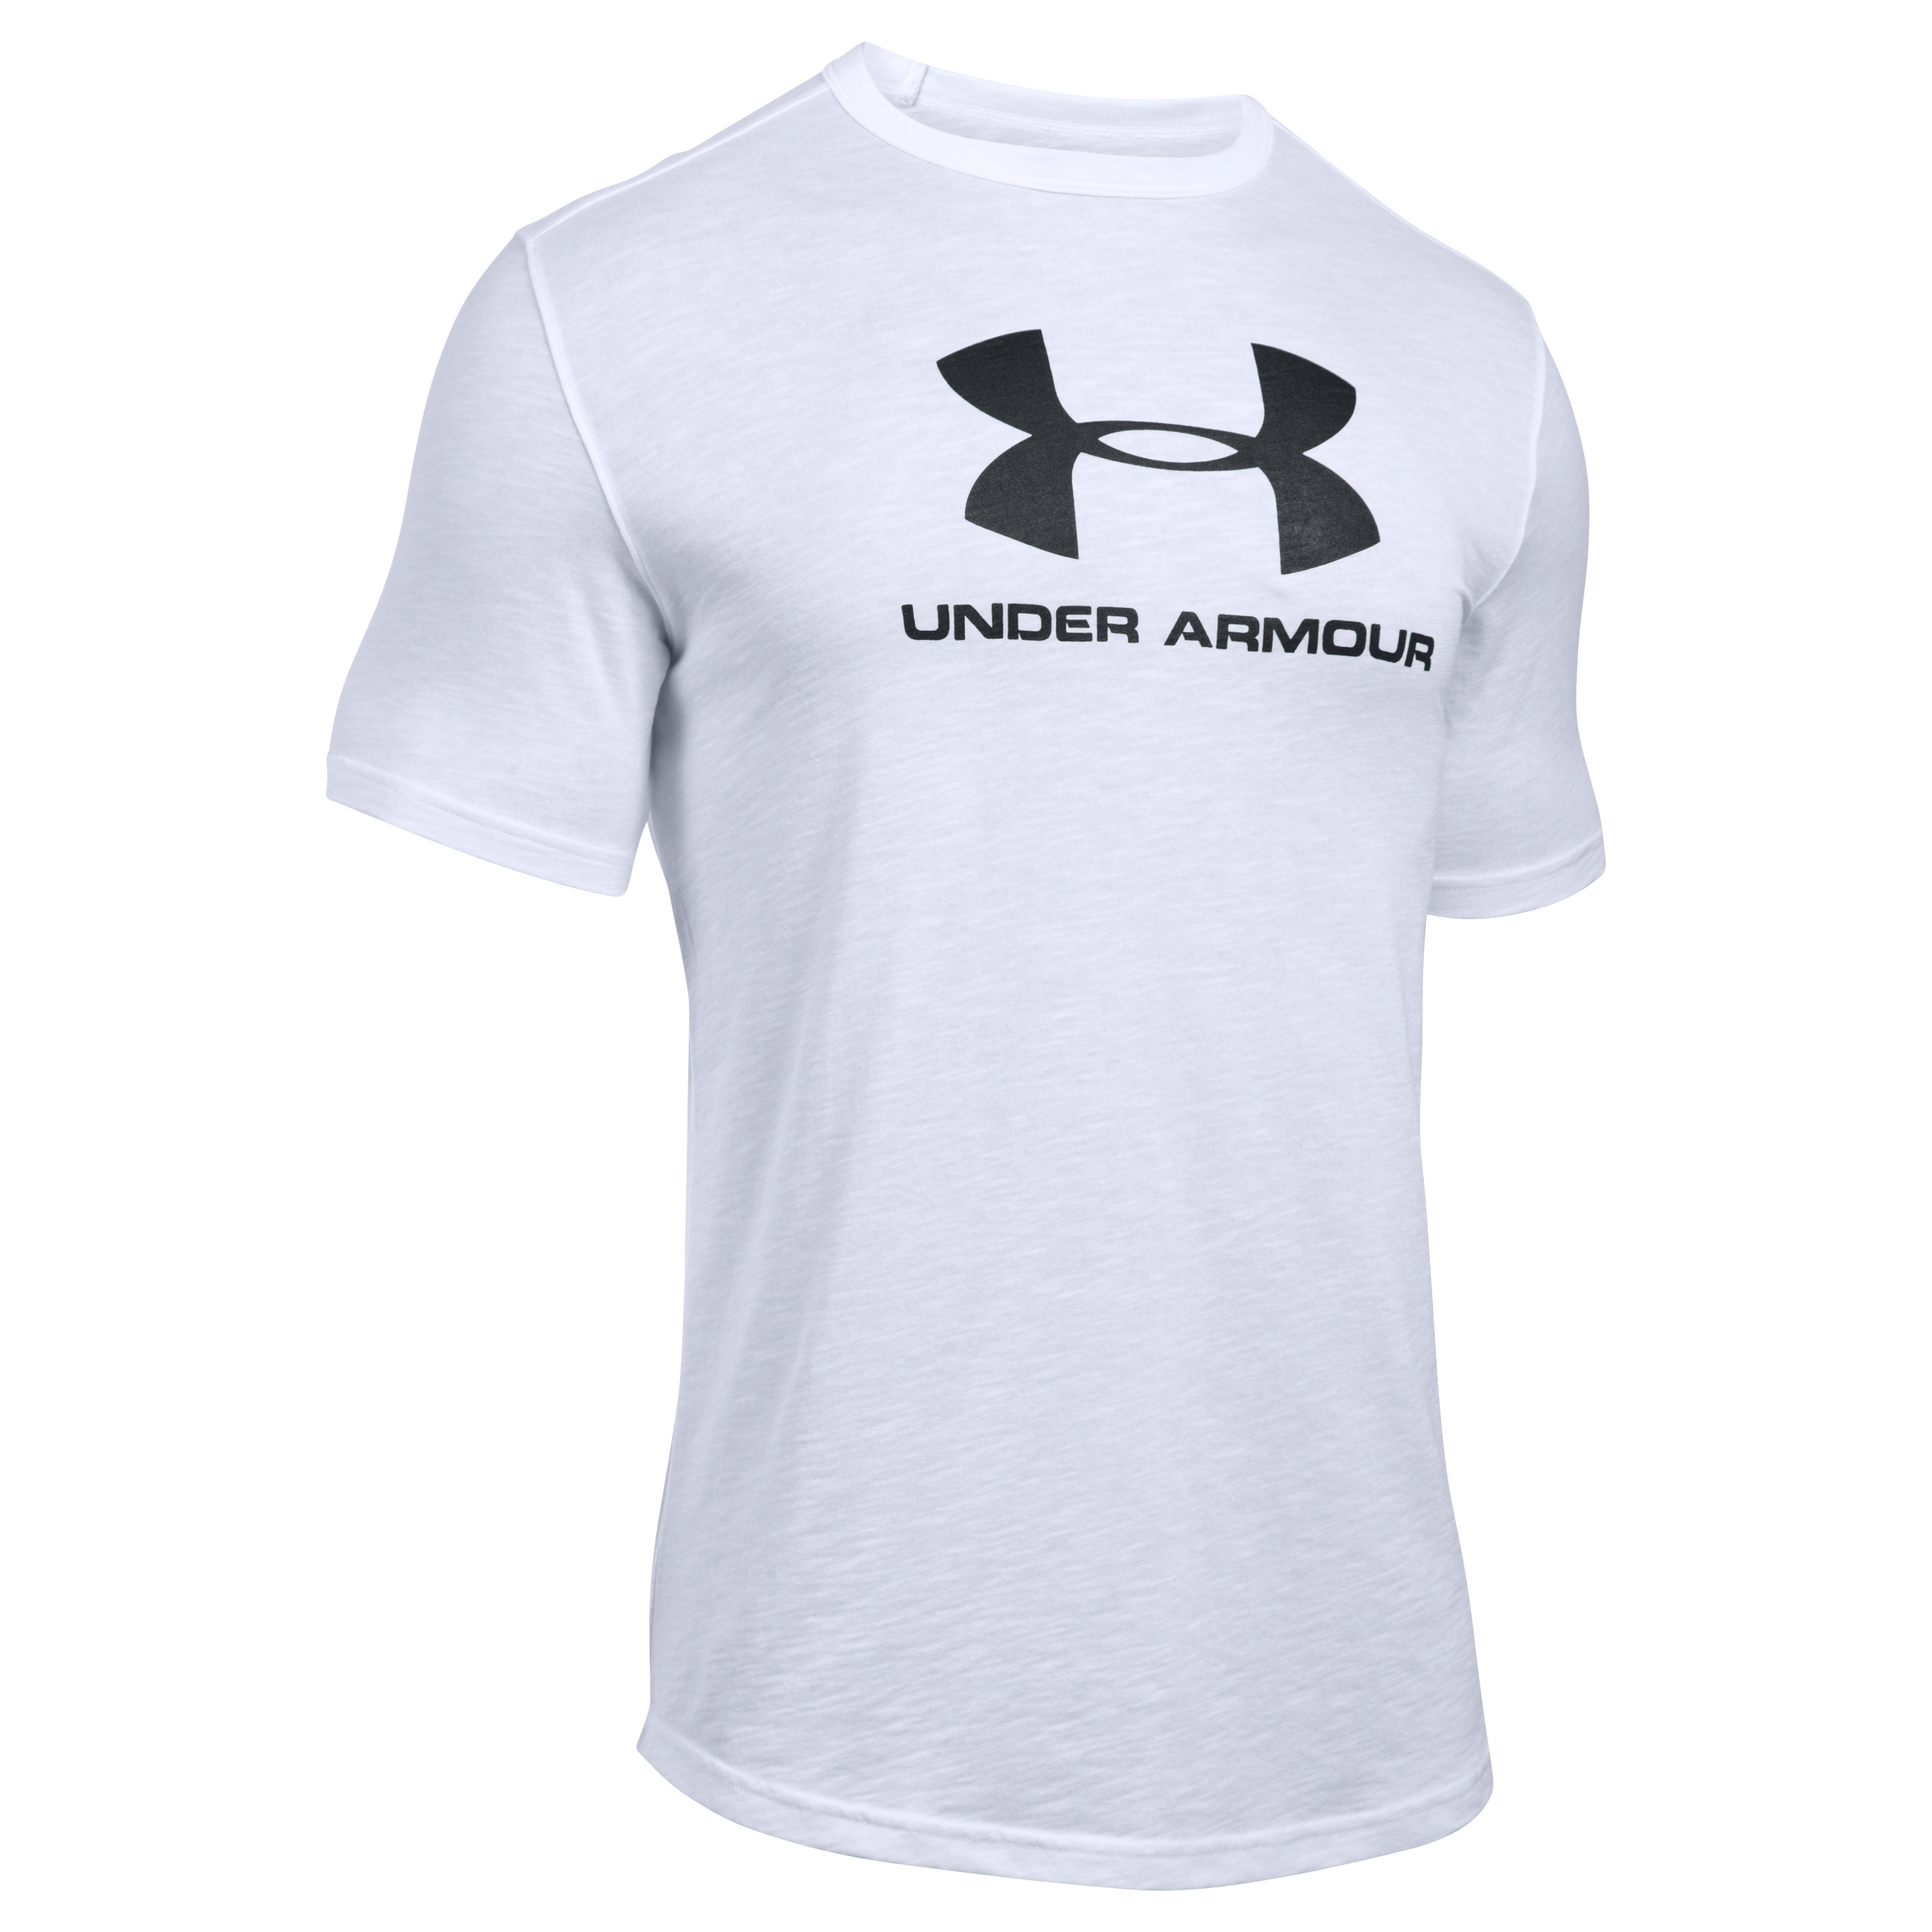 Under Armour Fitness T-Shirt Sport Style Branded Tee white